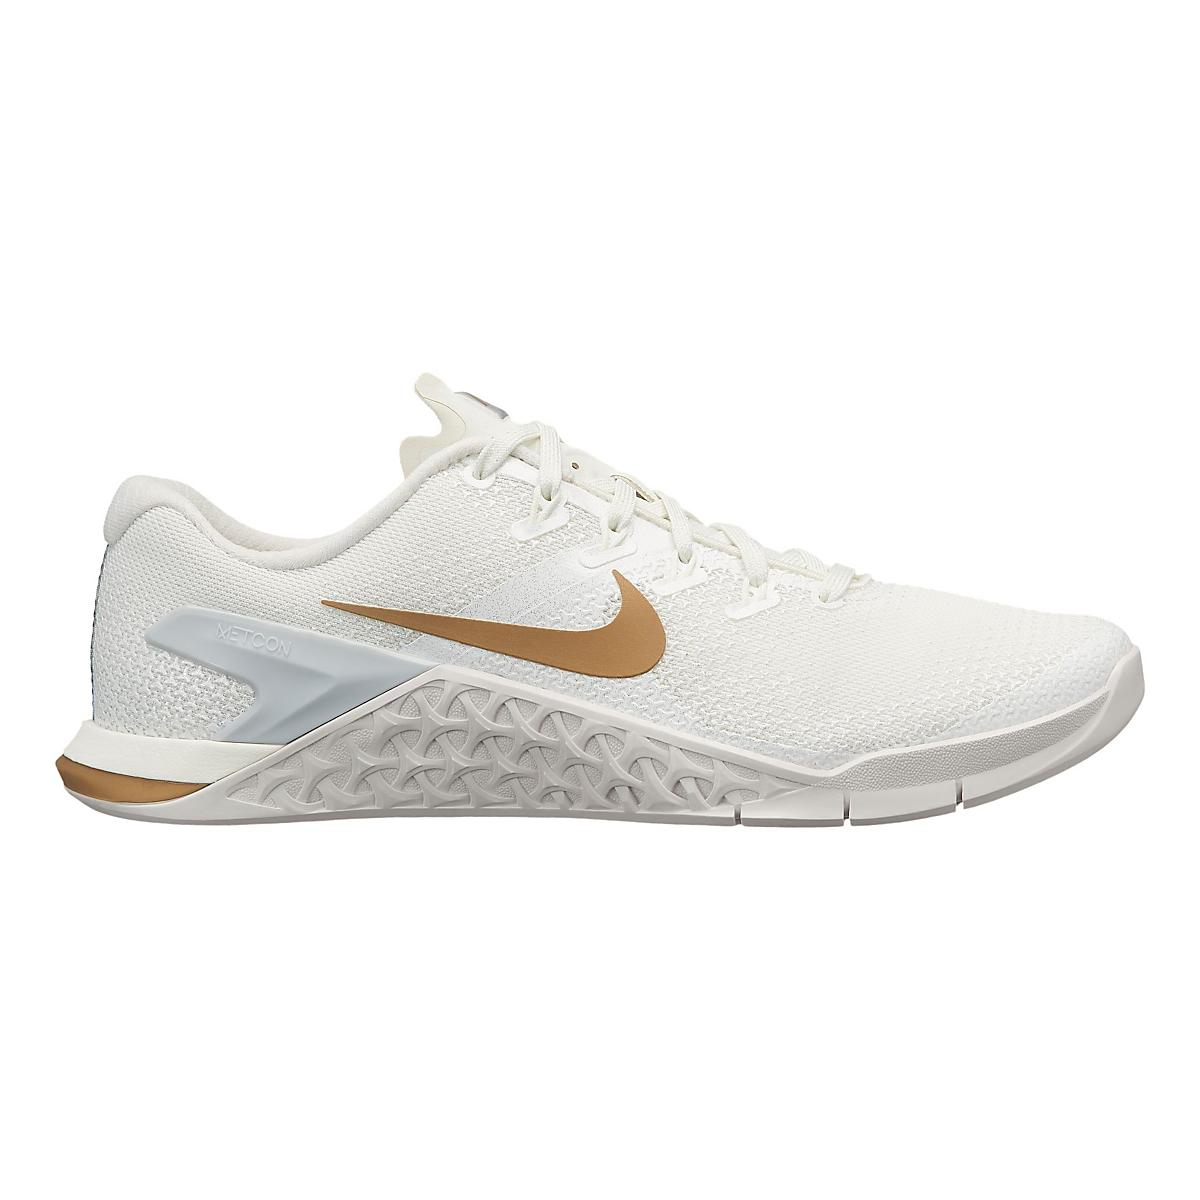 ca397a52171e Womens Nike Metcon 4 Champagne Cross Training Shoe at Road Runner Sports